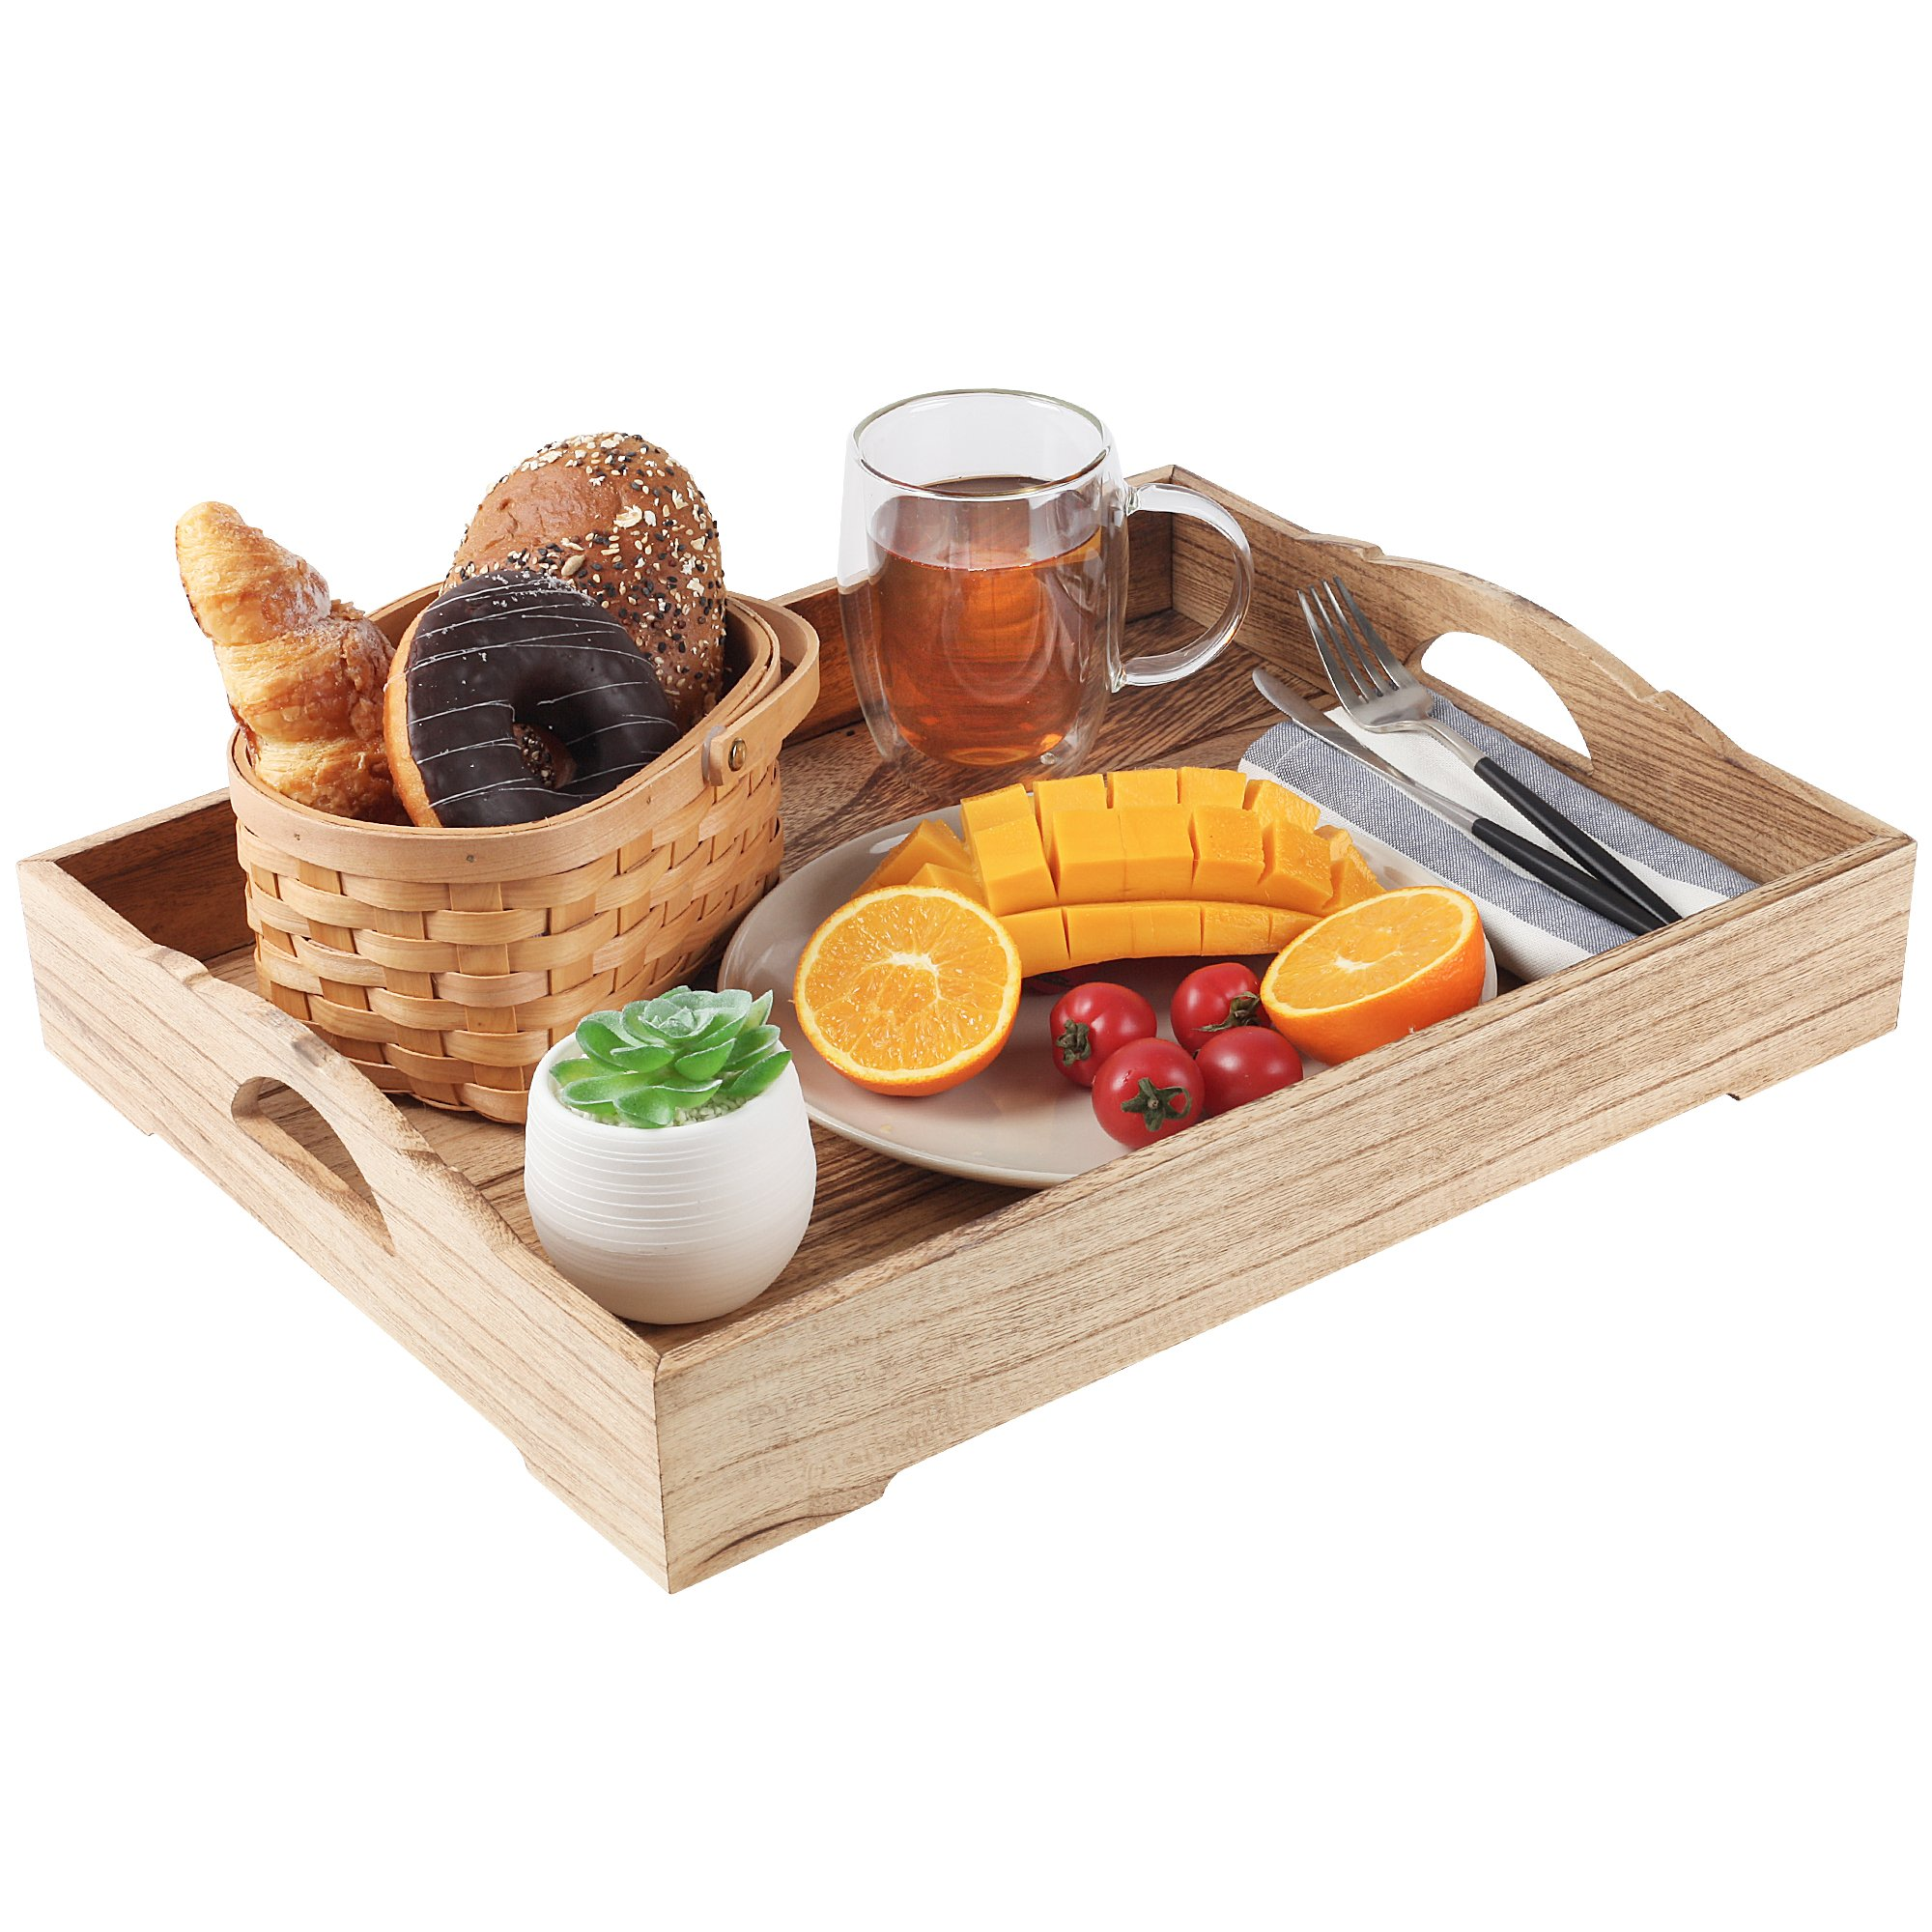 Wood Serving Tray – Suitable for use as an Ottoman Tray, Breakfast in Bed Tray and Home Décor Style Piece – Easy to Carry Handles – 18 x 14 inches – Natural Wood + FREE Home Décor eBook by lifetoenjoy (Image #9)